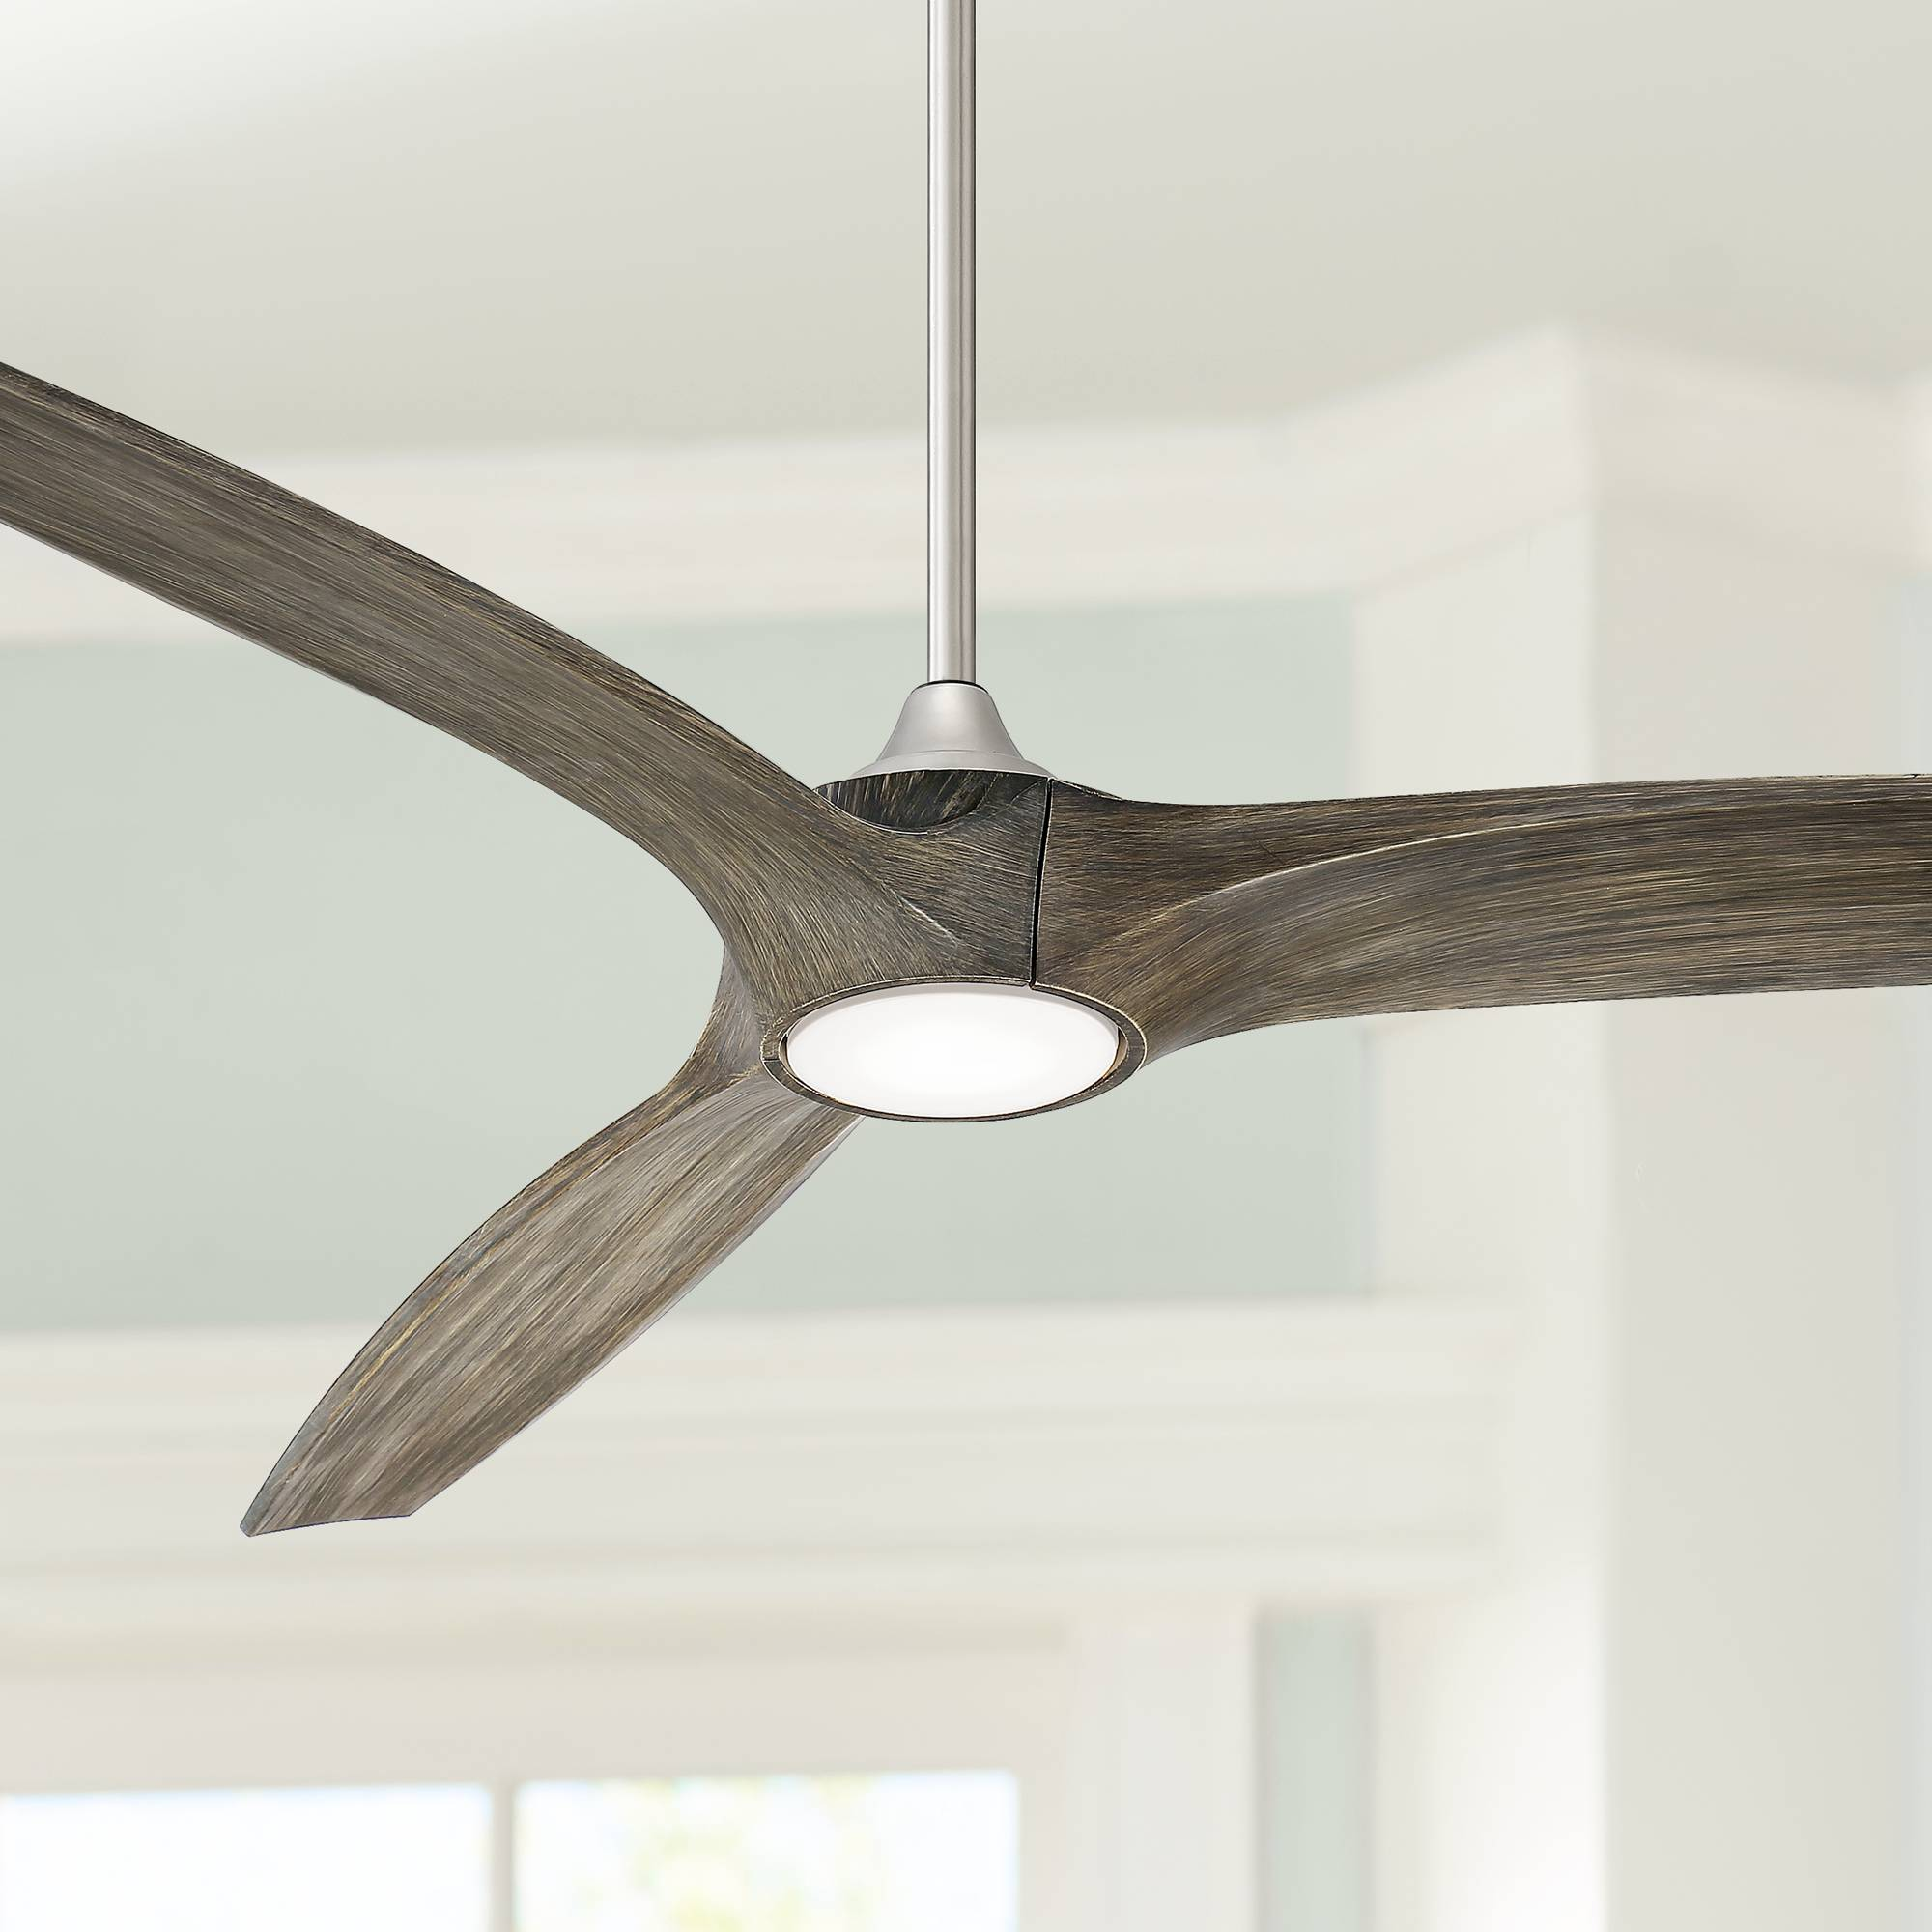 Details About 60 Modern Outdoor Ceiling Fan With Light Led Dimmable Remote Nickel Damp Patio